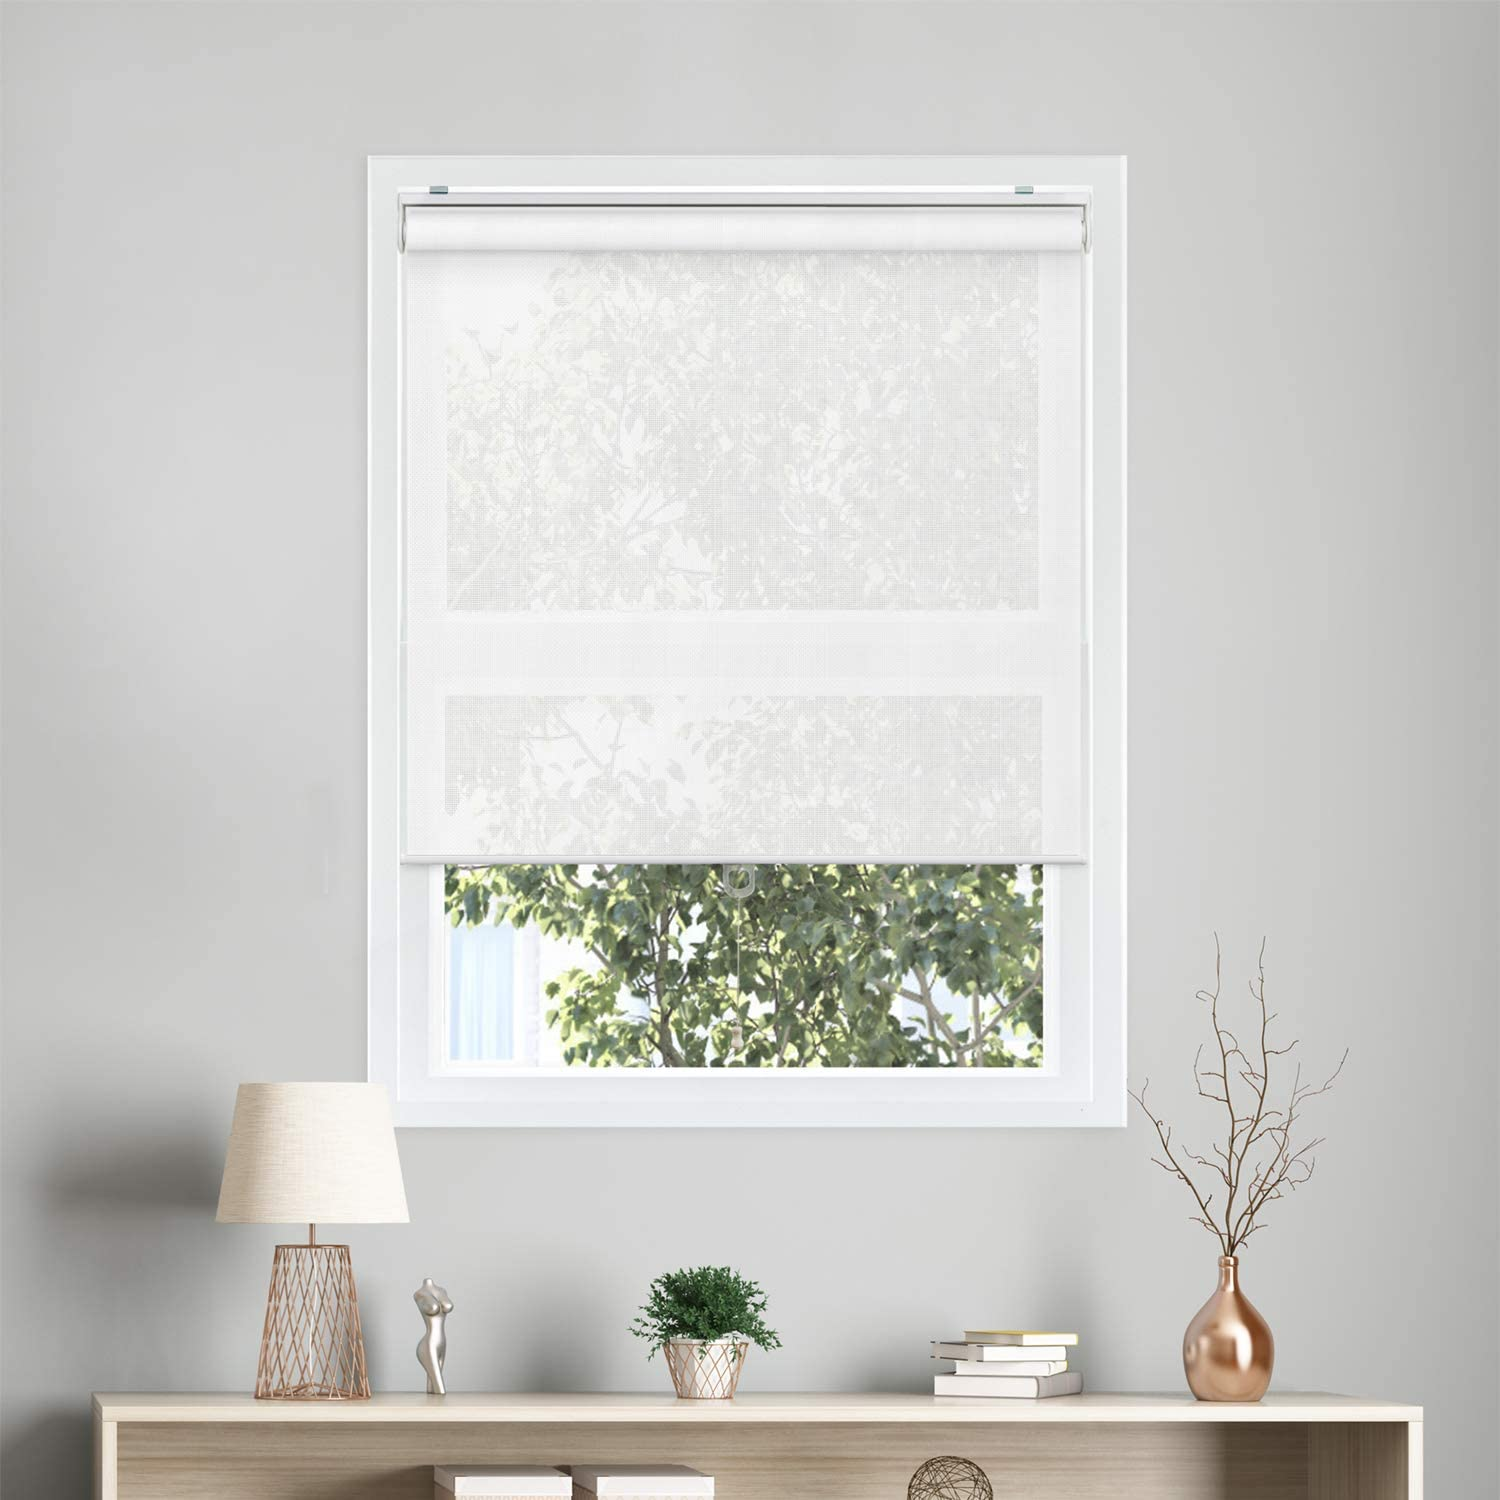 "CHICOLOGY Cordless Roller Shades Snap-N'-Glide Sun Filtering Fabric Perfect for Living Room/Bedroom/Nursery/Office and More, 23"" W X 72"" H, View-Tiful White (Solar)"